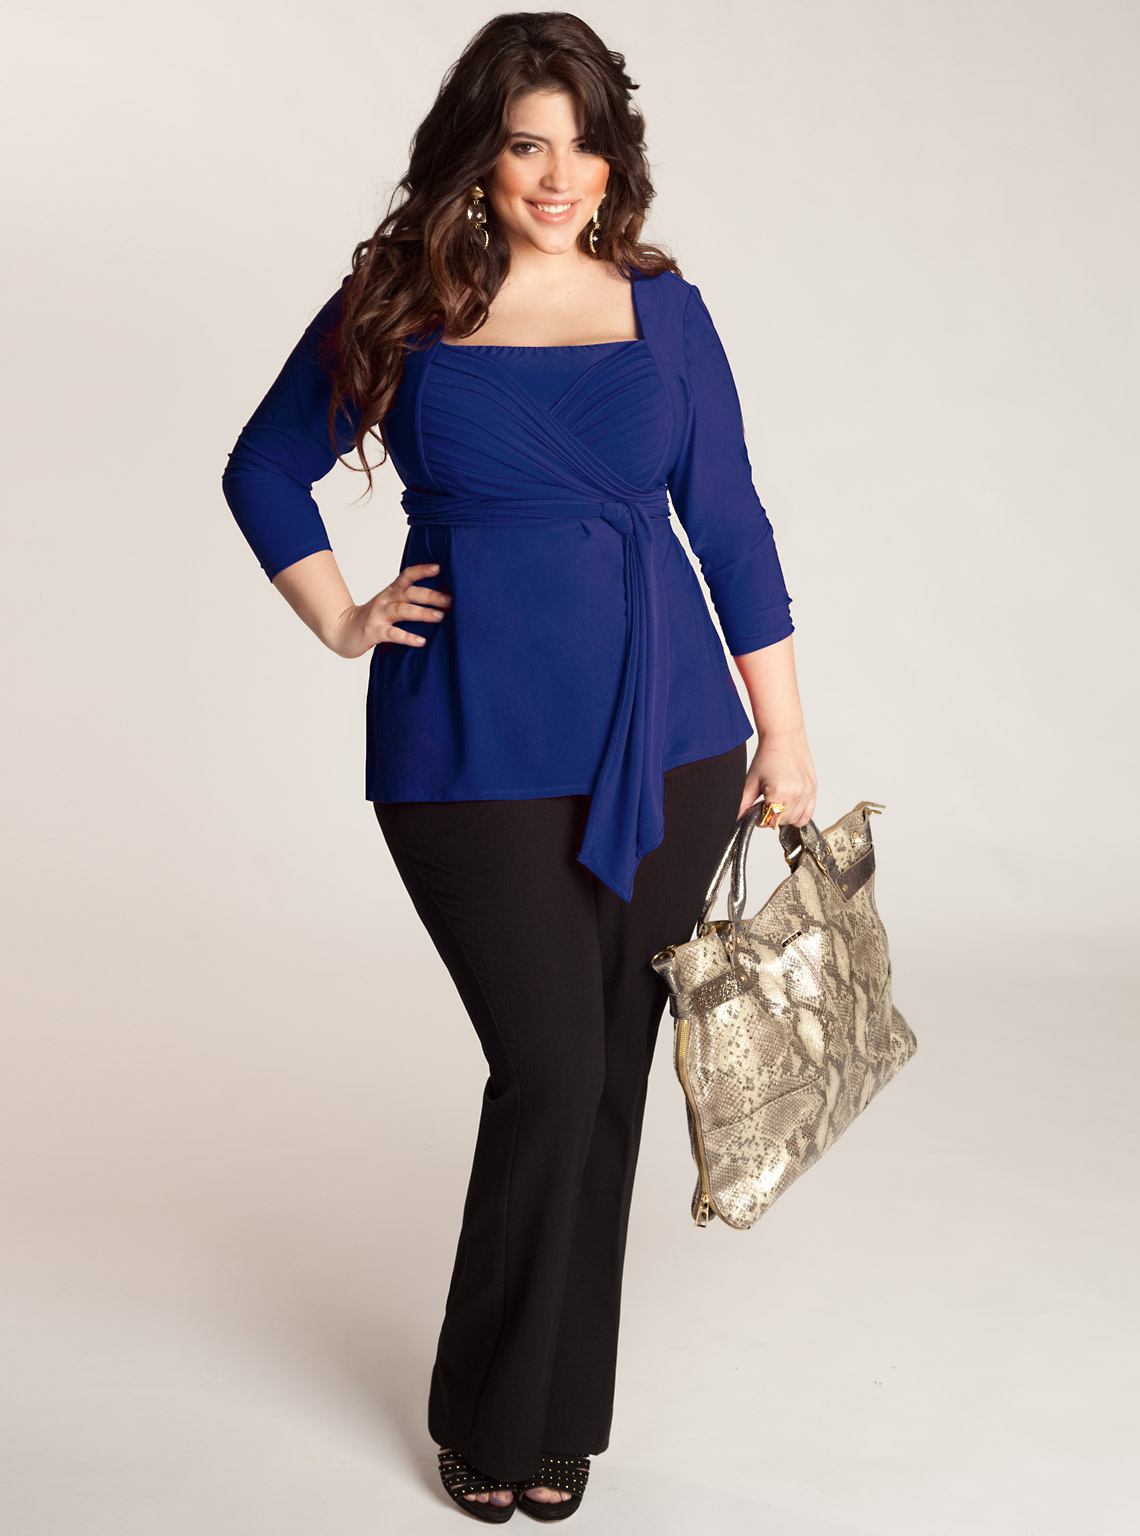 Plus Size Clothing. At Torrid, we're serious releasing our newest looks while keeping true to our trademark: being First at Fit ™.We believe fit is everything: .